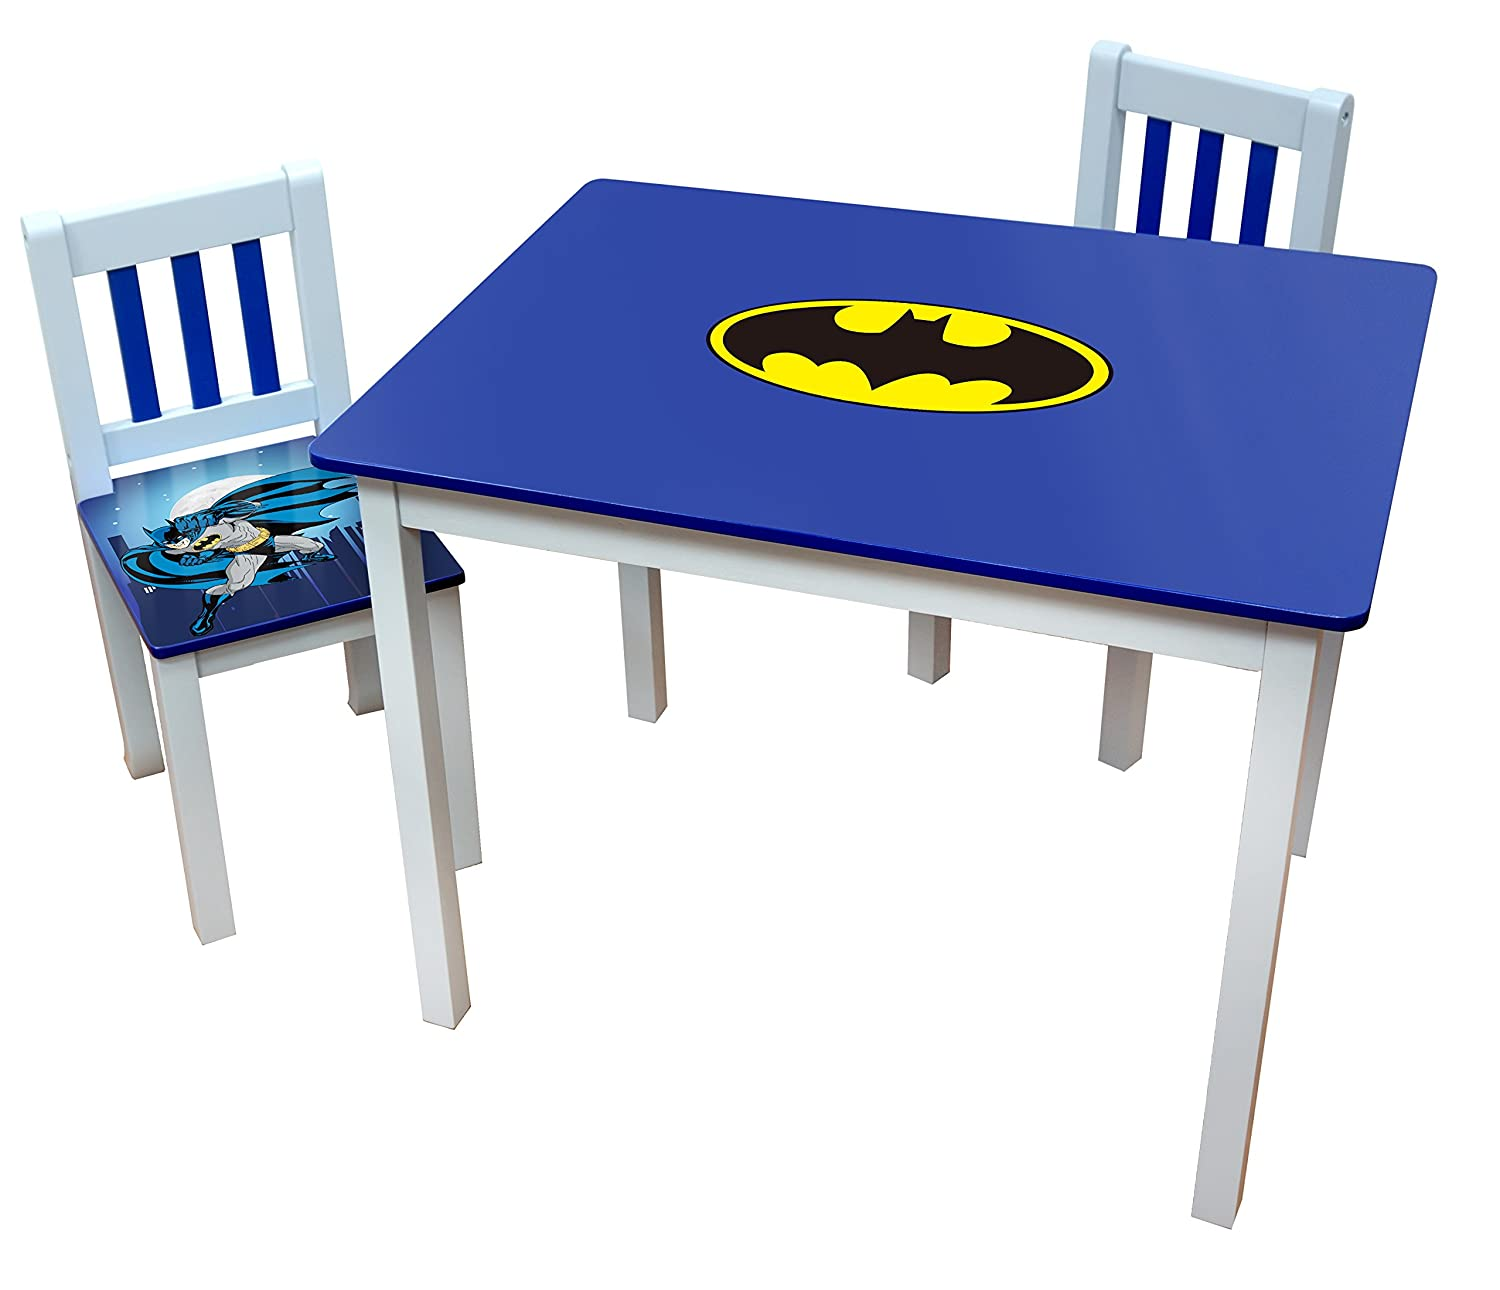 Pleasing Amazon Com Okids Batman Wooden Table And Chair Set Machost Co Dining Chair Design Ideas Machostcouk